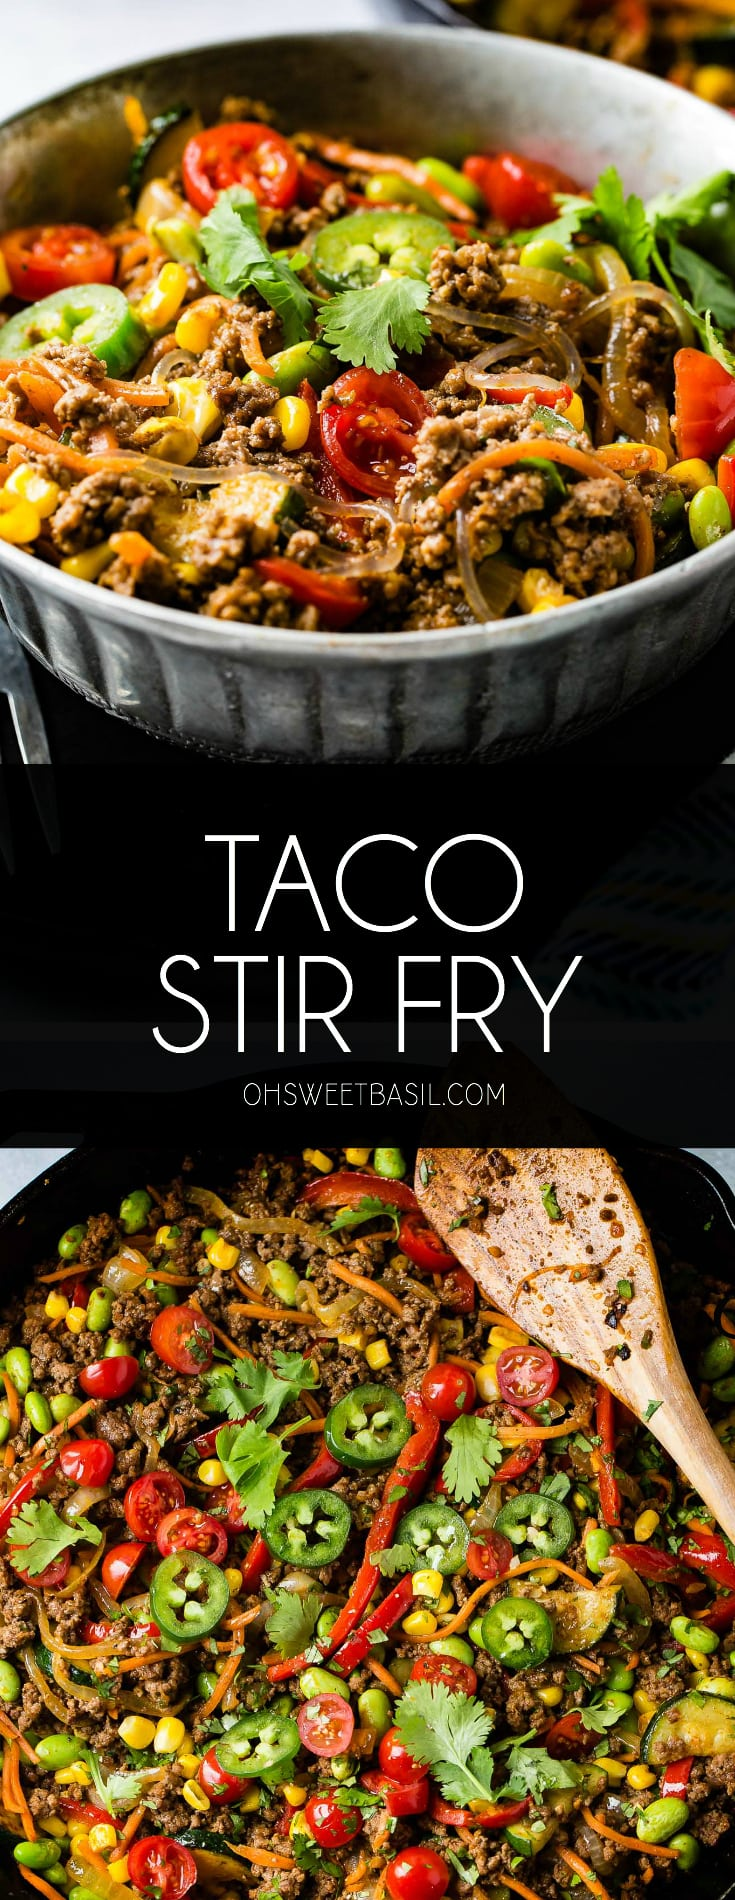 A bowl of taco stir fry. The stir fry contains corn, zucchini, jalapenos, tomatoes, pasta, and ground beef.